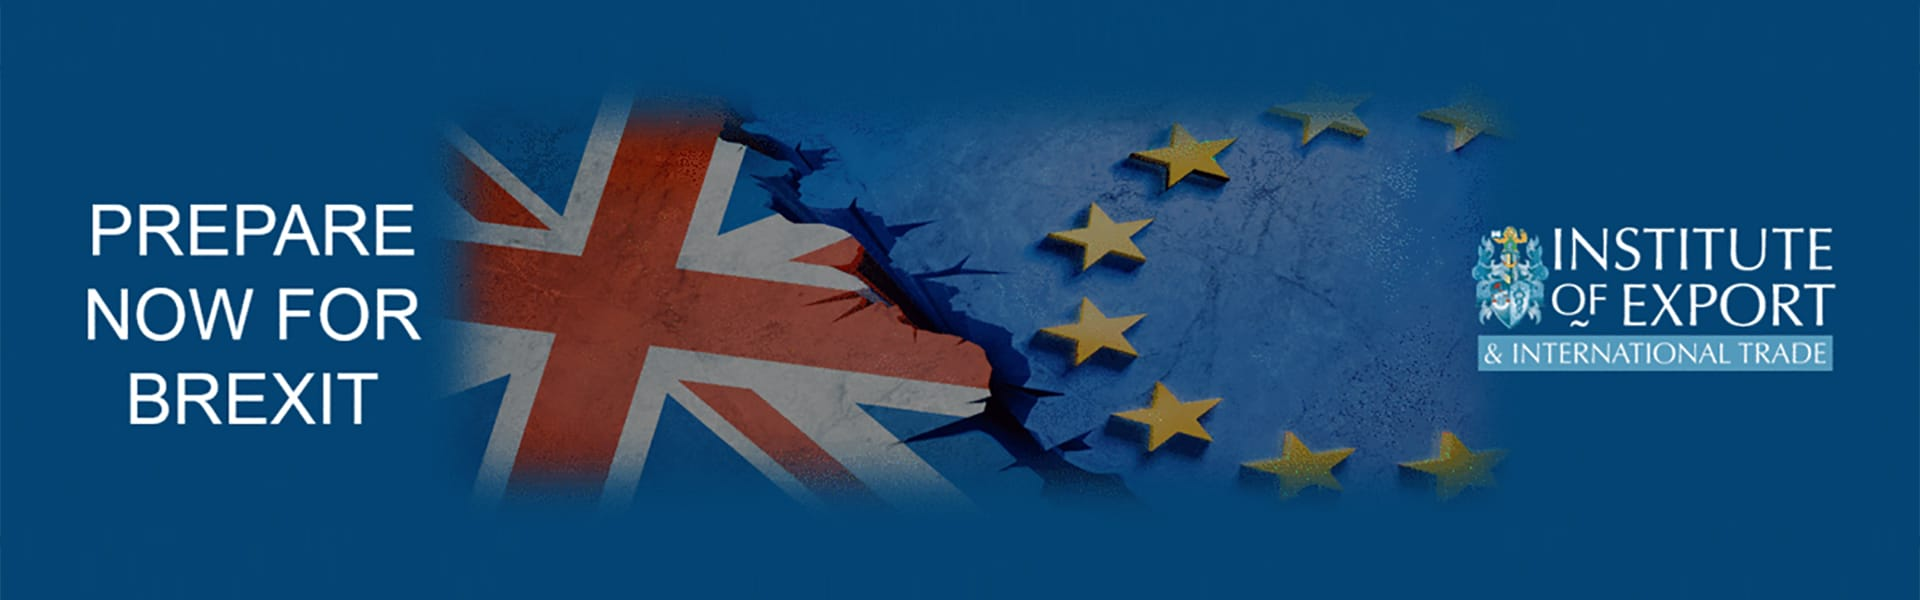 Less than 100 days to go – are you prepared for Brexit?